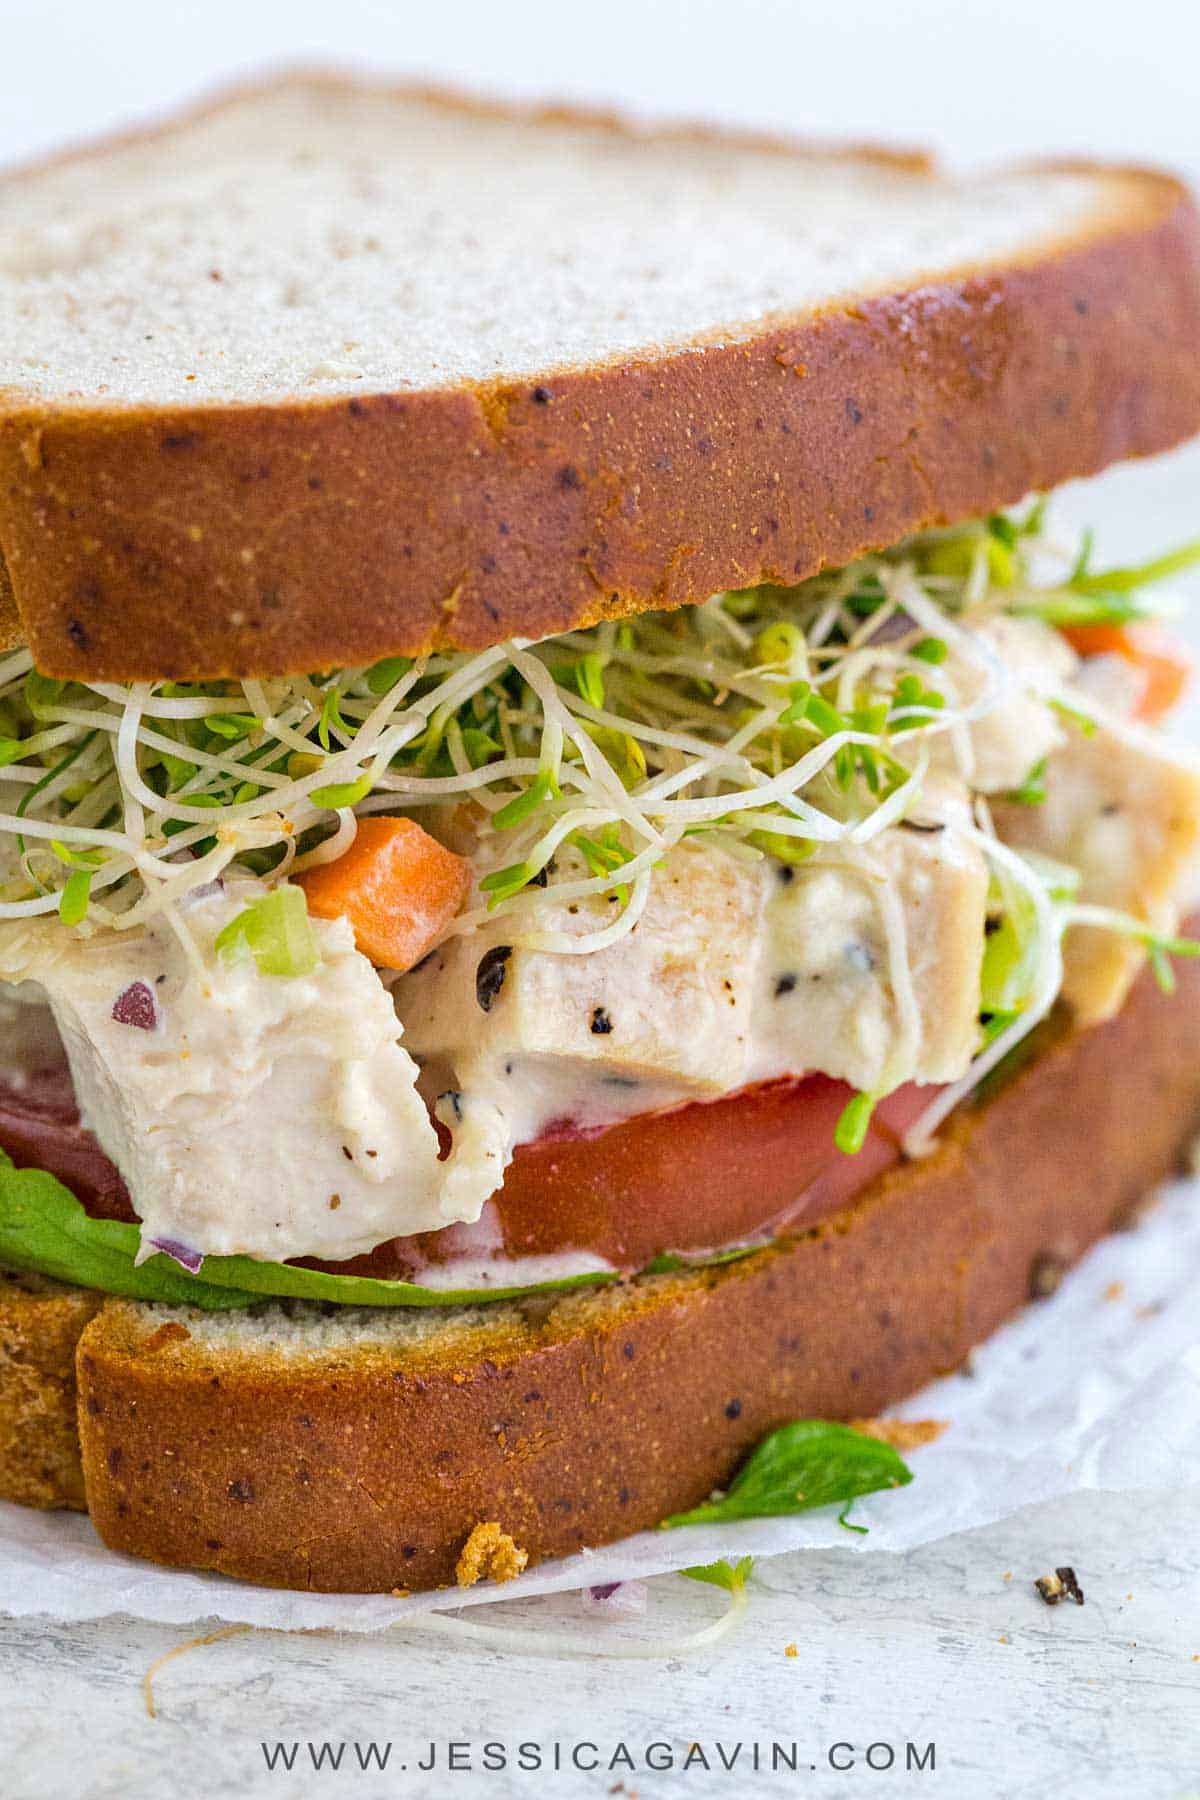 Chicken salad sandwich with tender bites of lean protein mixed with crunchy vegetables that are tossed in a creamy mustard sauce. #lunch #sandwich #chickensalad